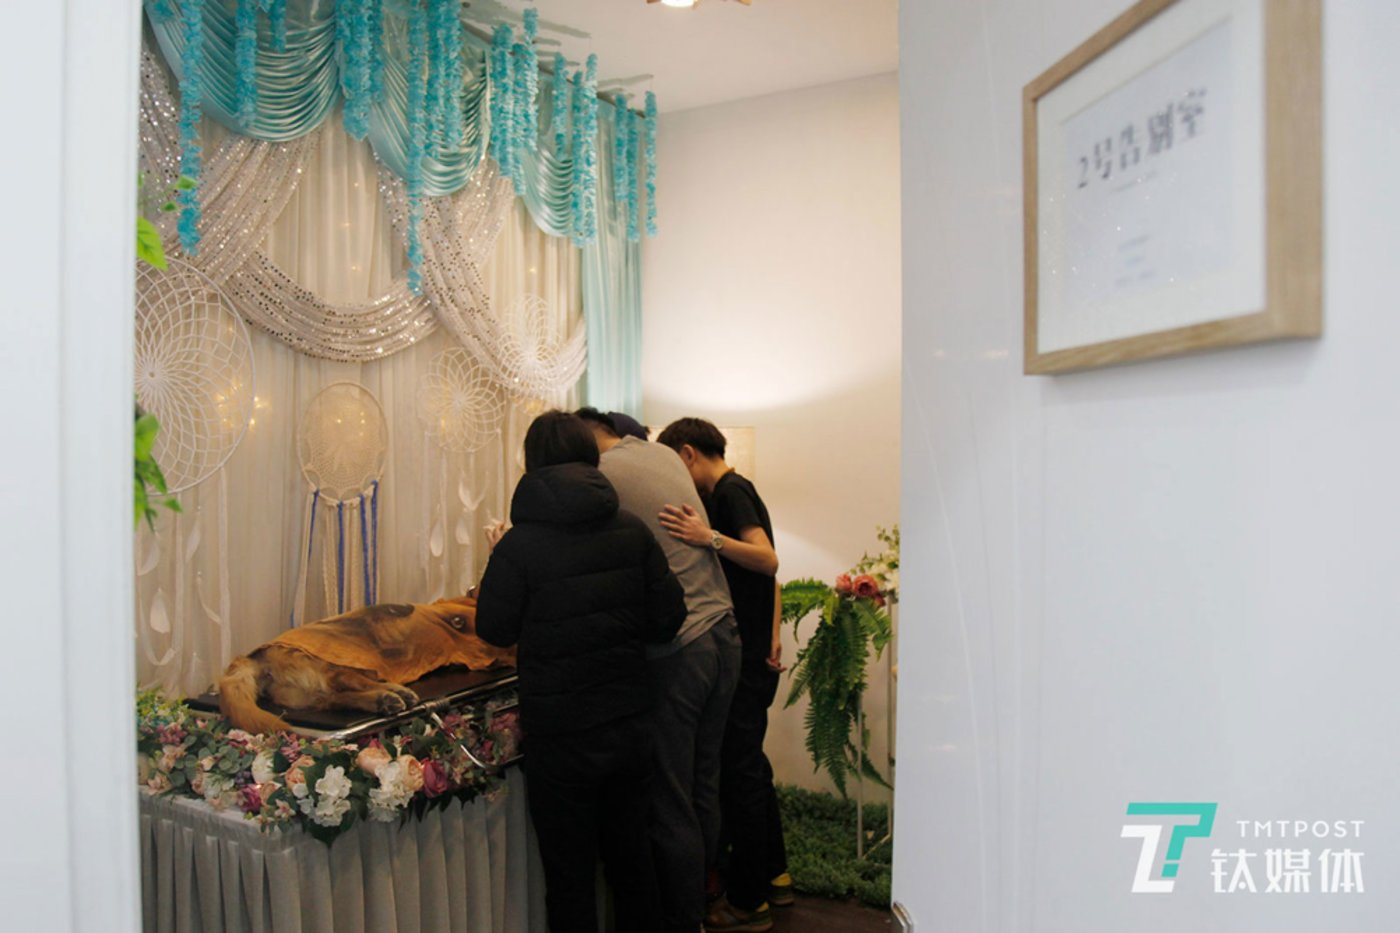 Once his body is cleaned, Mán Tou is placed in the farewell room.